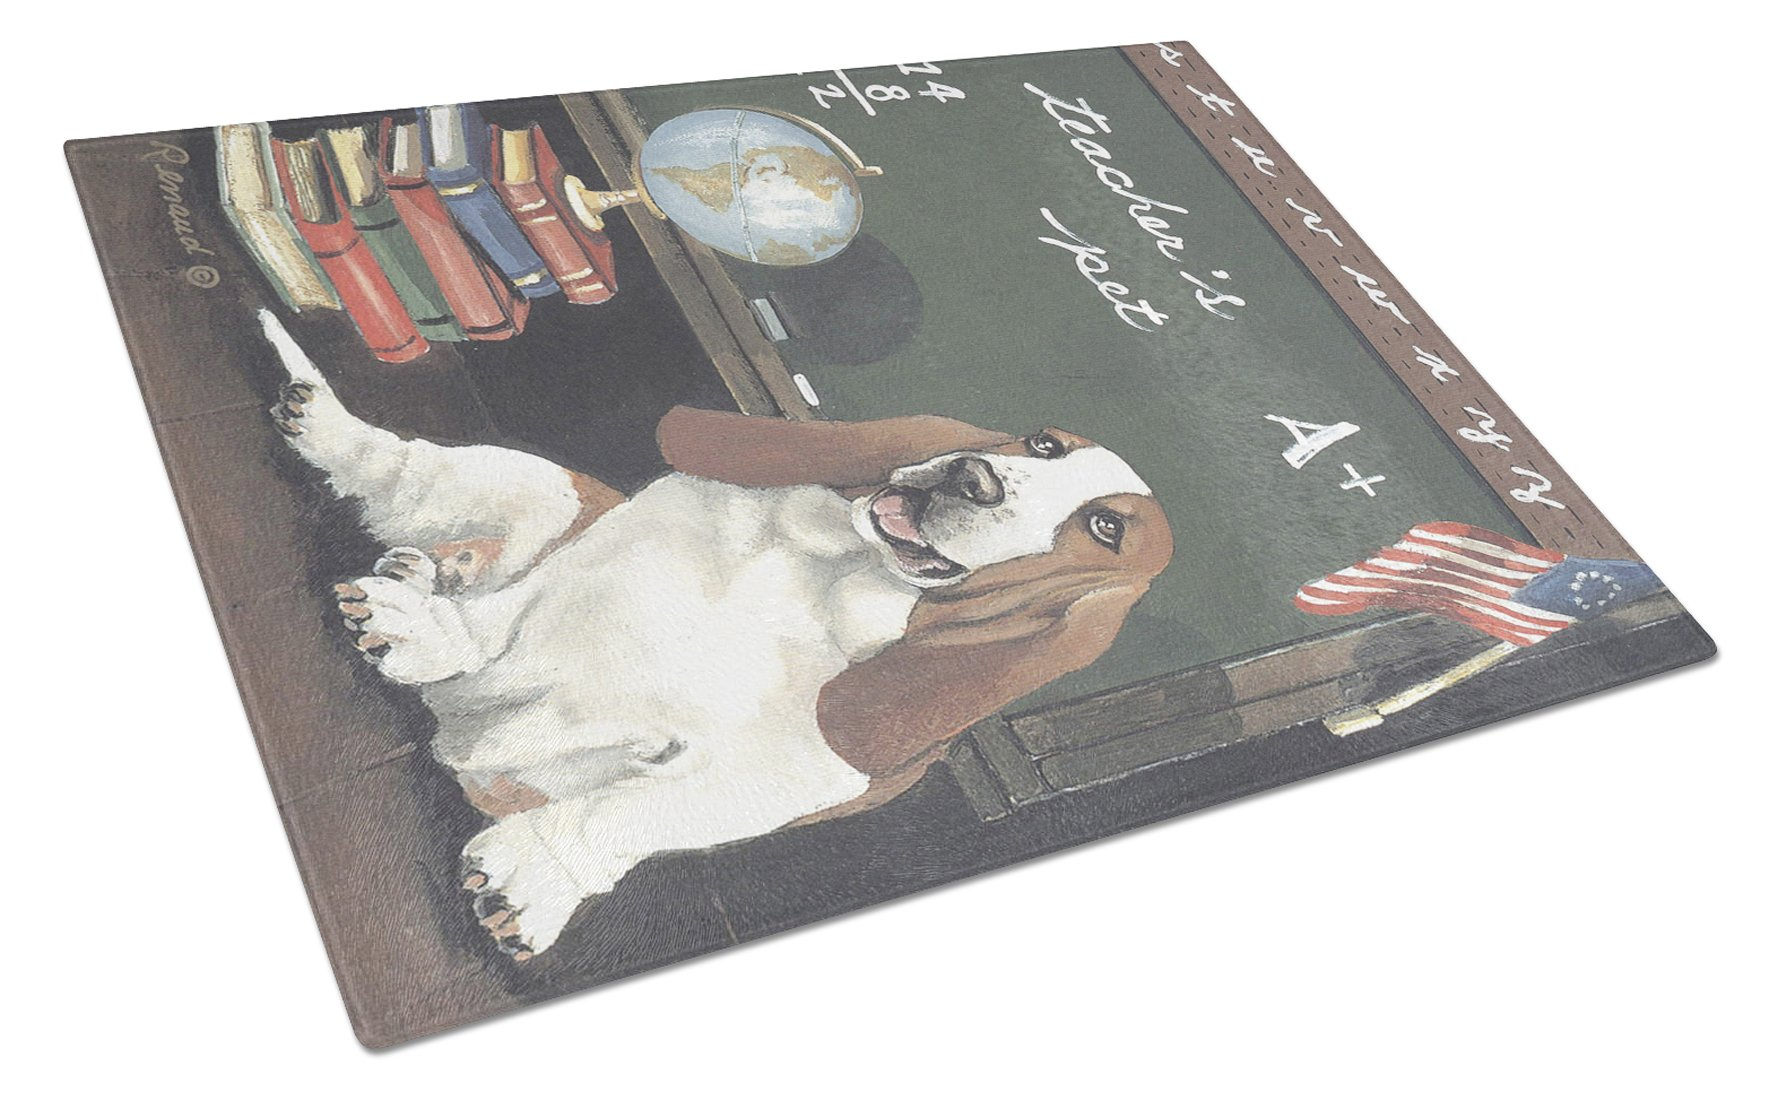 Basset Hound Teacher's Pet Glass Cutting Board Large PPP3013LCB by Caroline's Treasures